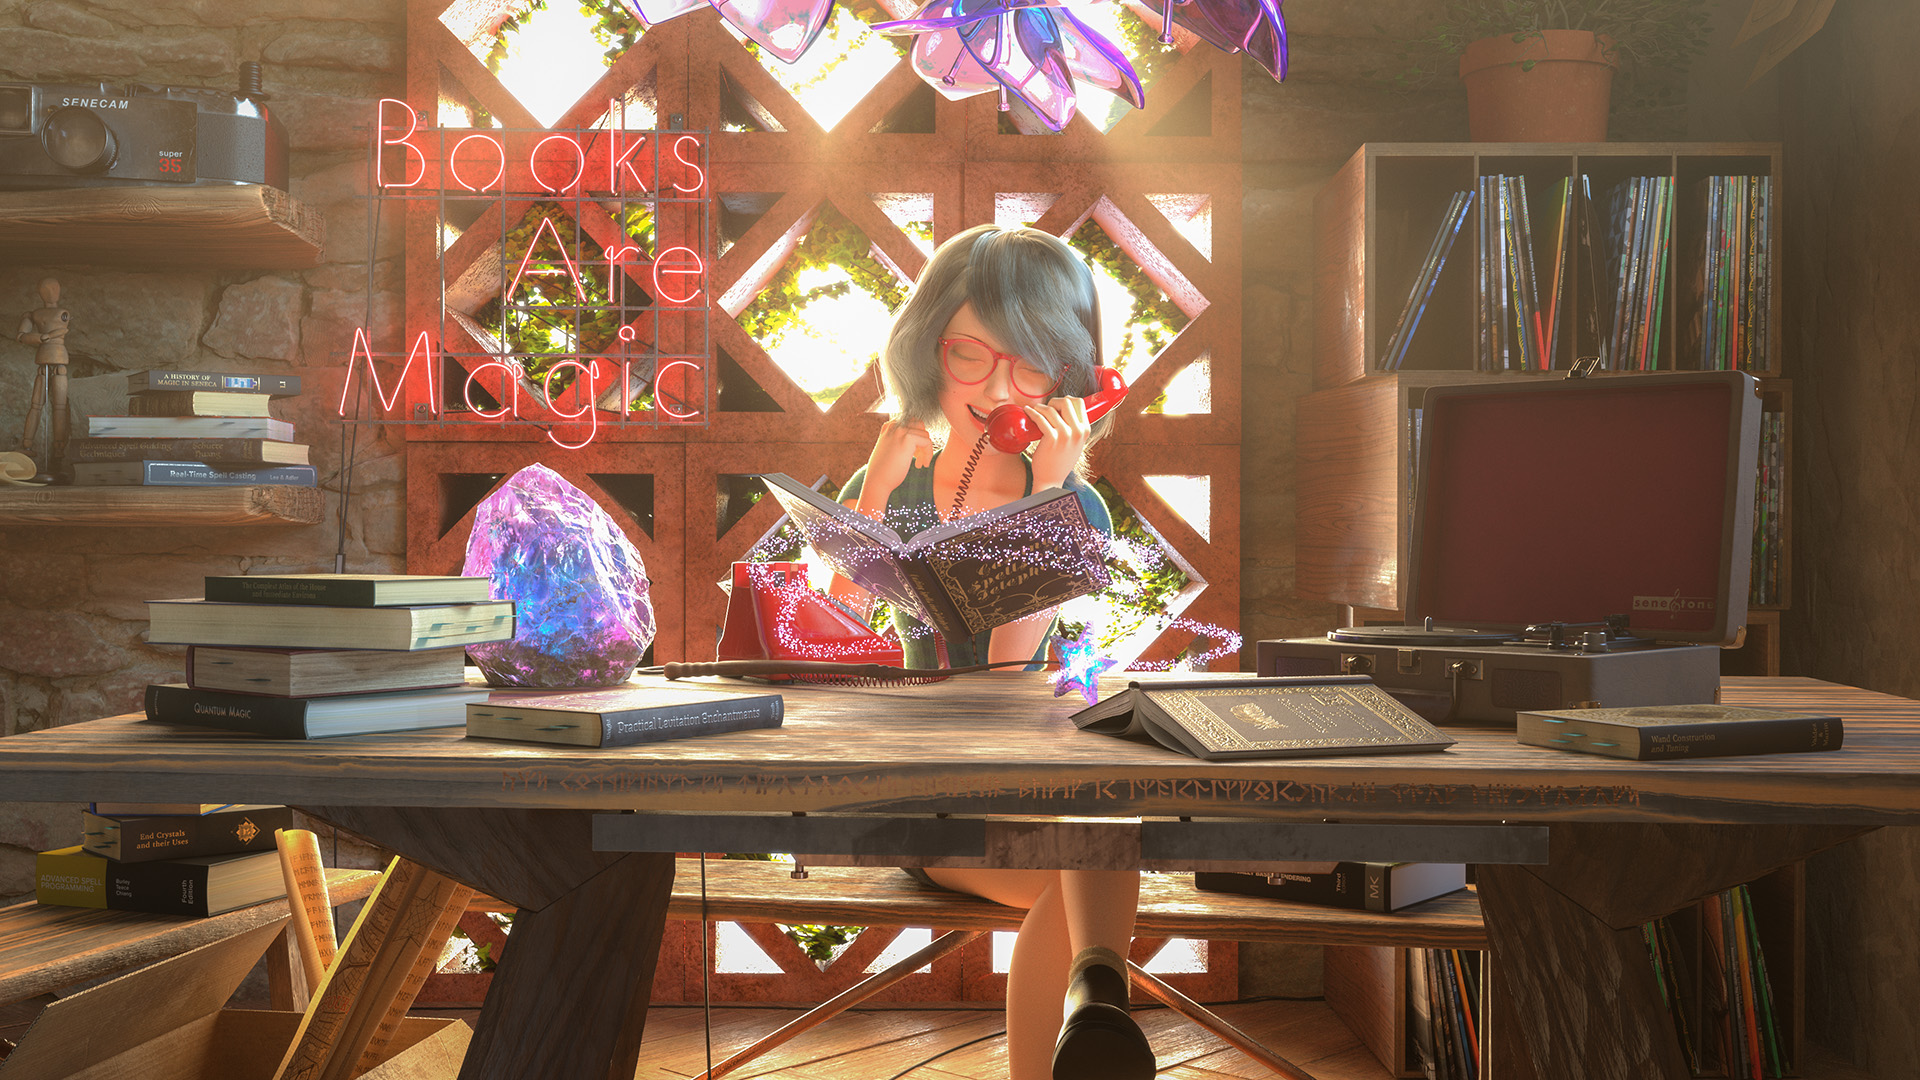 """Figure 1: My entry to Pixar's RenderMan Magic Shop Art Challenge, titled """"Books are Magic"""". Click for 4K version. Mathilda model by Xiong Lin and rig by Leon Sooi. Pixar models by Eman Abdul-Razzaq, Grace Chang, Ethan Crossno, Siobhán Ensley, Derrick Forkel, Felege Gebru, Damian Kwiatkowski, Jeremy Paton, Leif Pedersen, Kylie Wijsmuller, and Miguel Zozaya © Disney / Pixar - RenderMan """"Magic Shop"""" Art Challenge."""